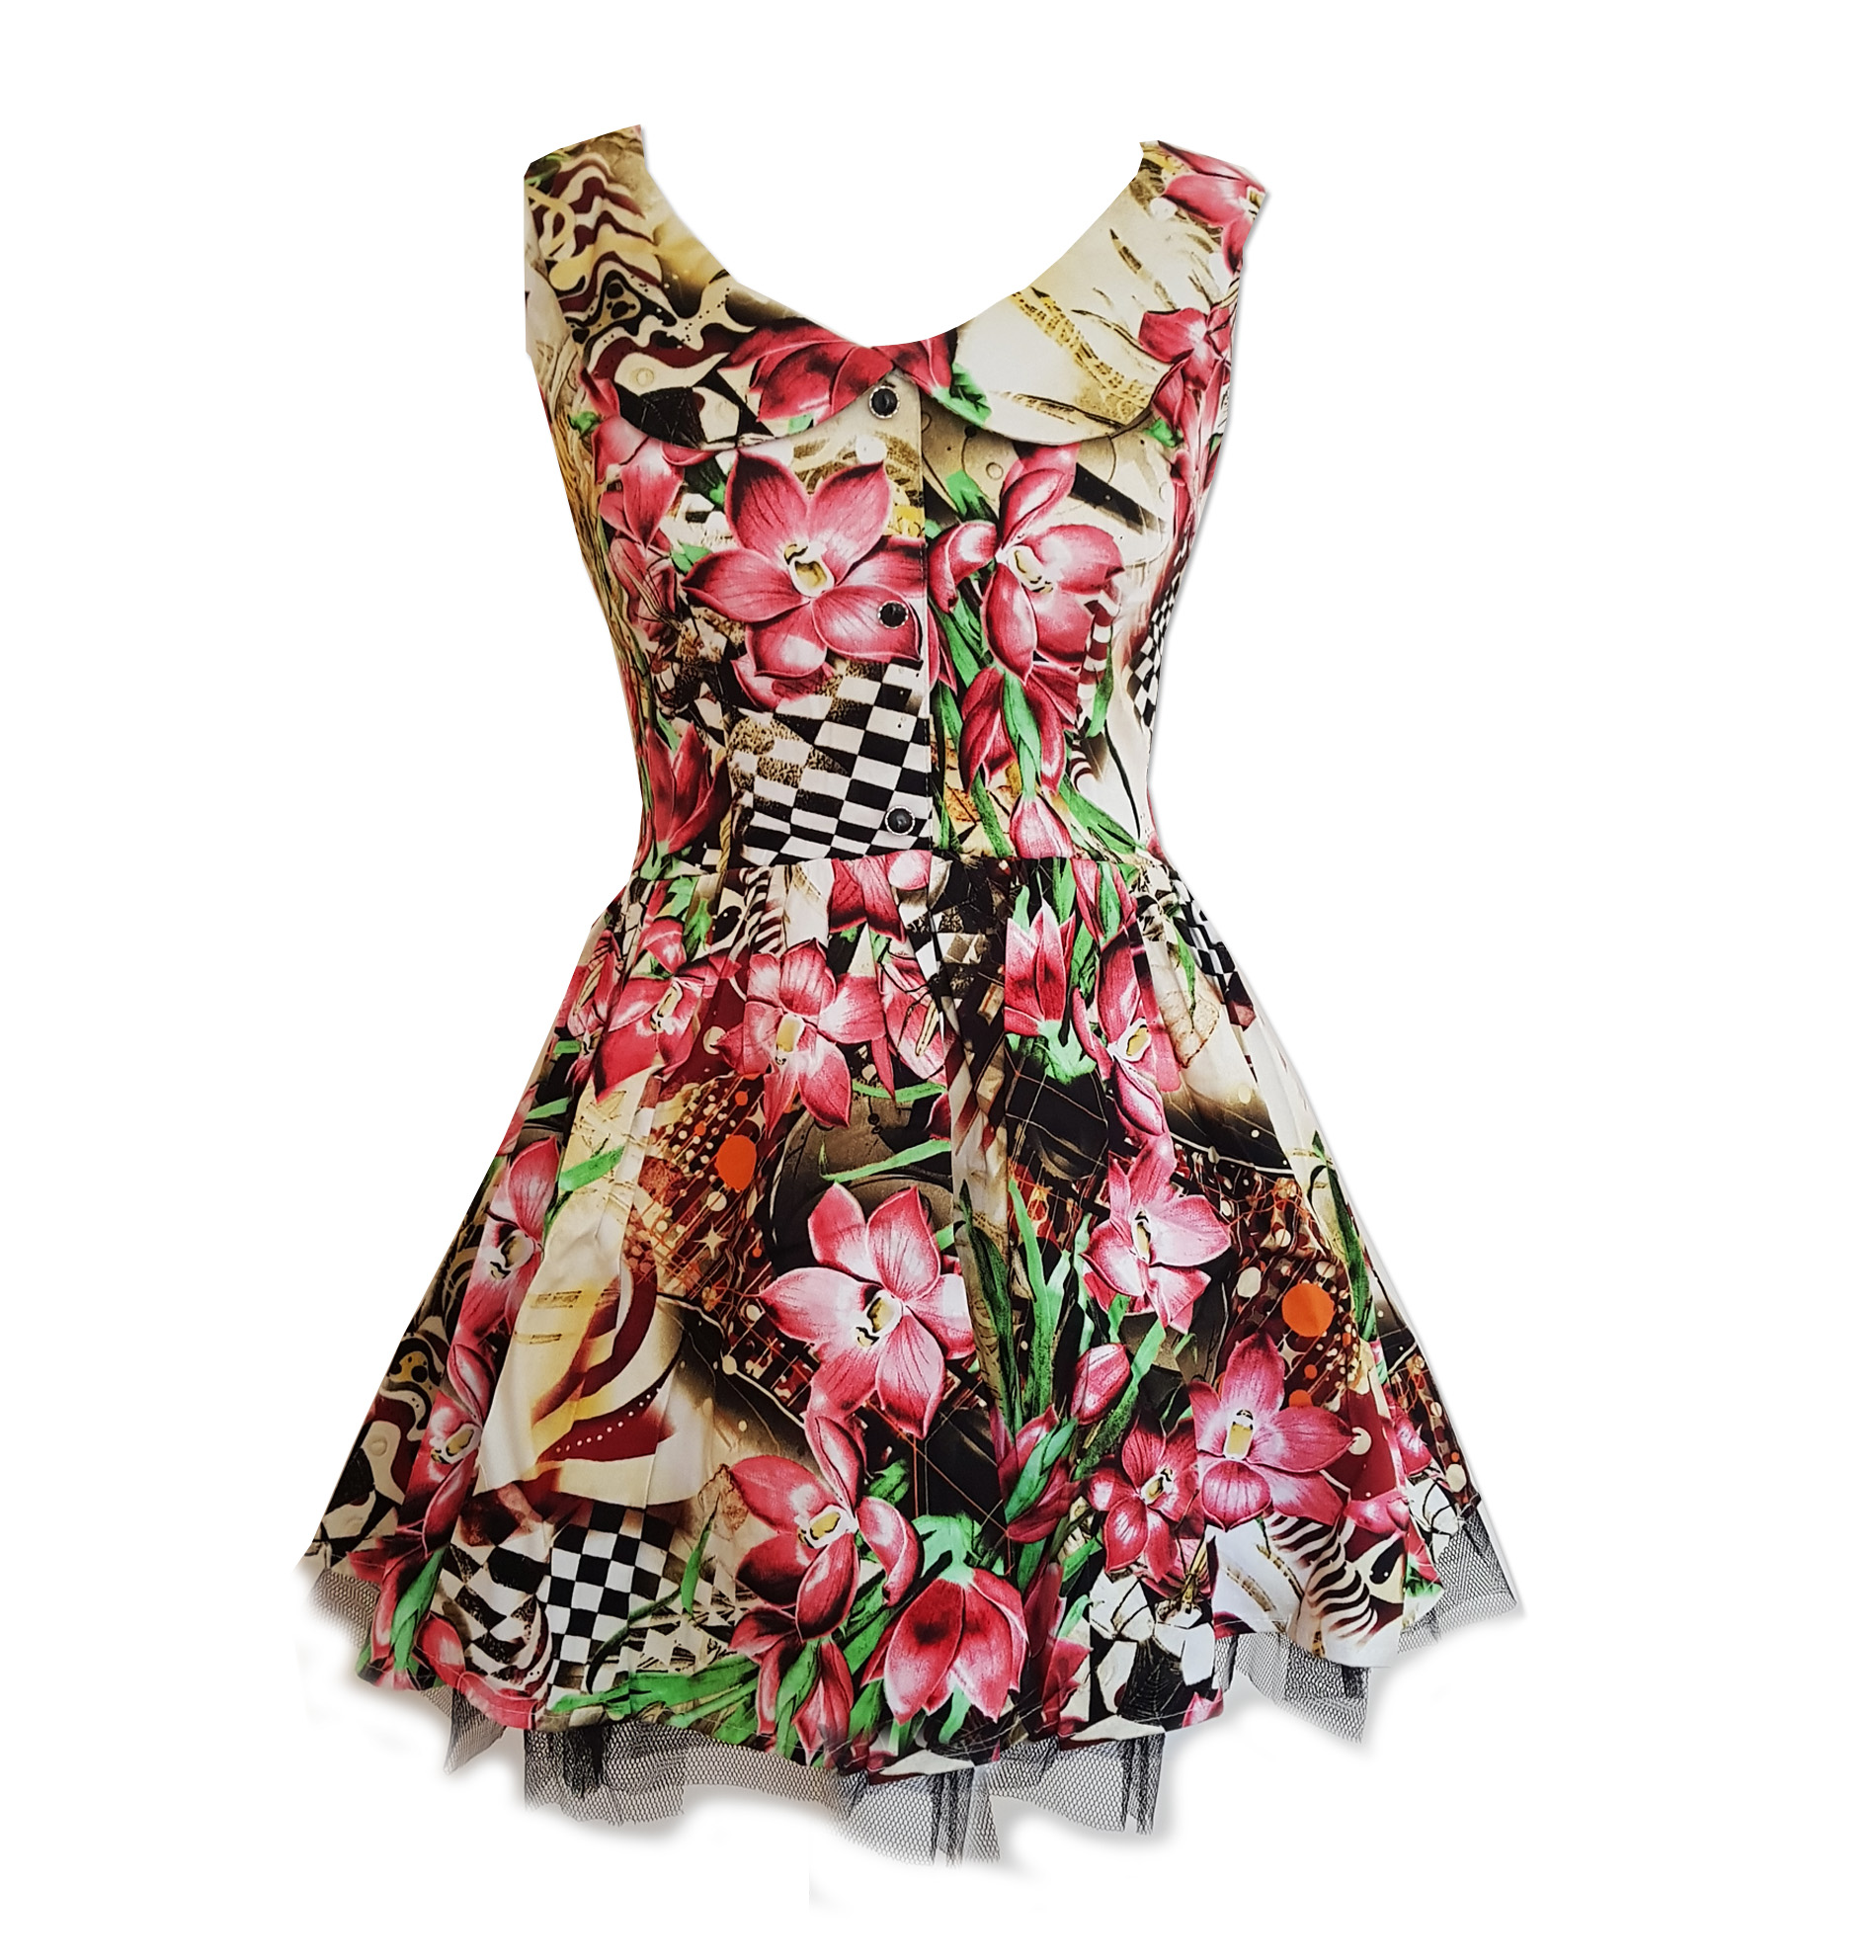 H-amp-R-Hearts-amp-Roses-London-Pink-Mini-Dress-039-Lily-Checkerboard-039-Flowers-All-Sizes thumbnail 15